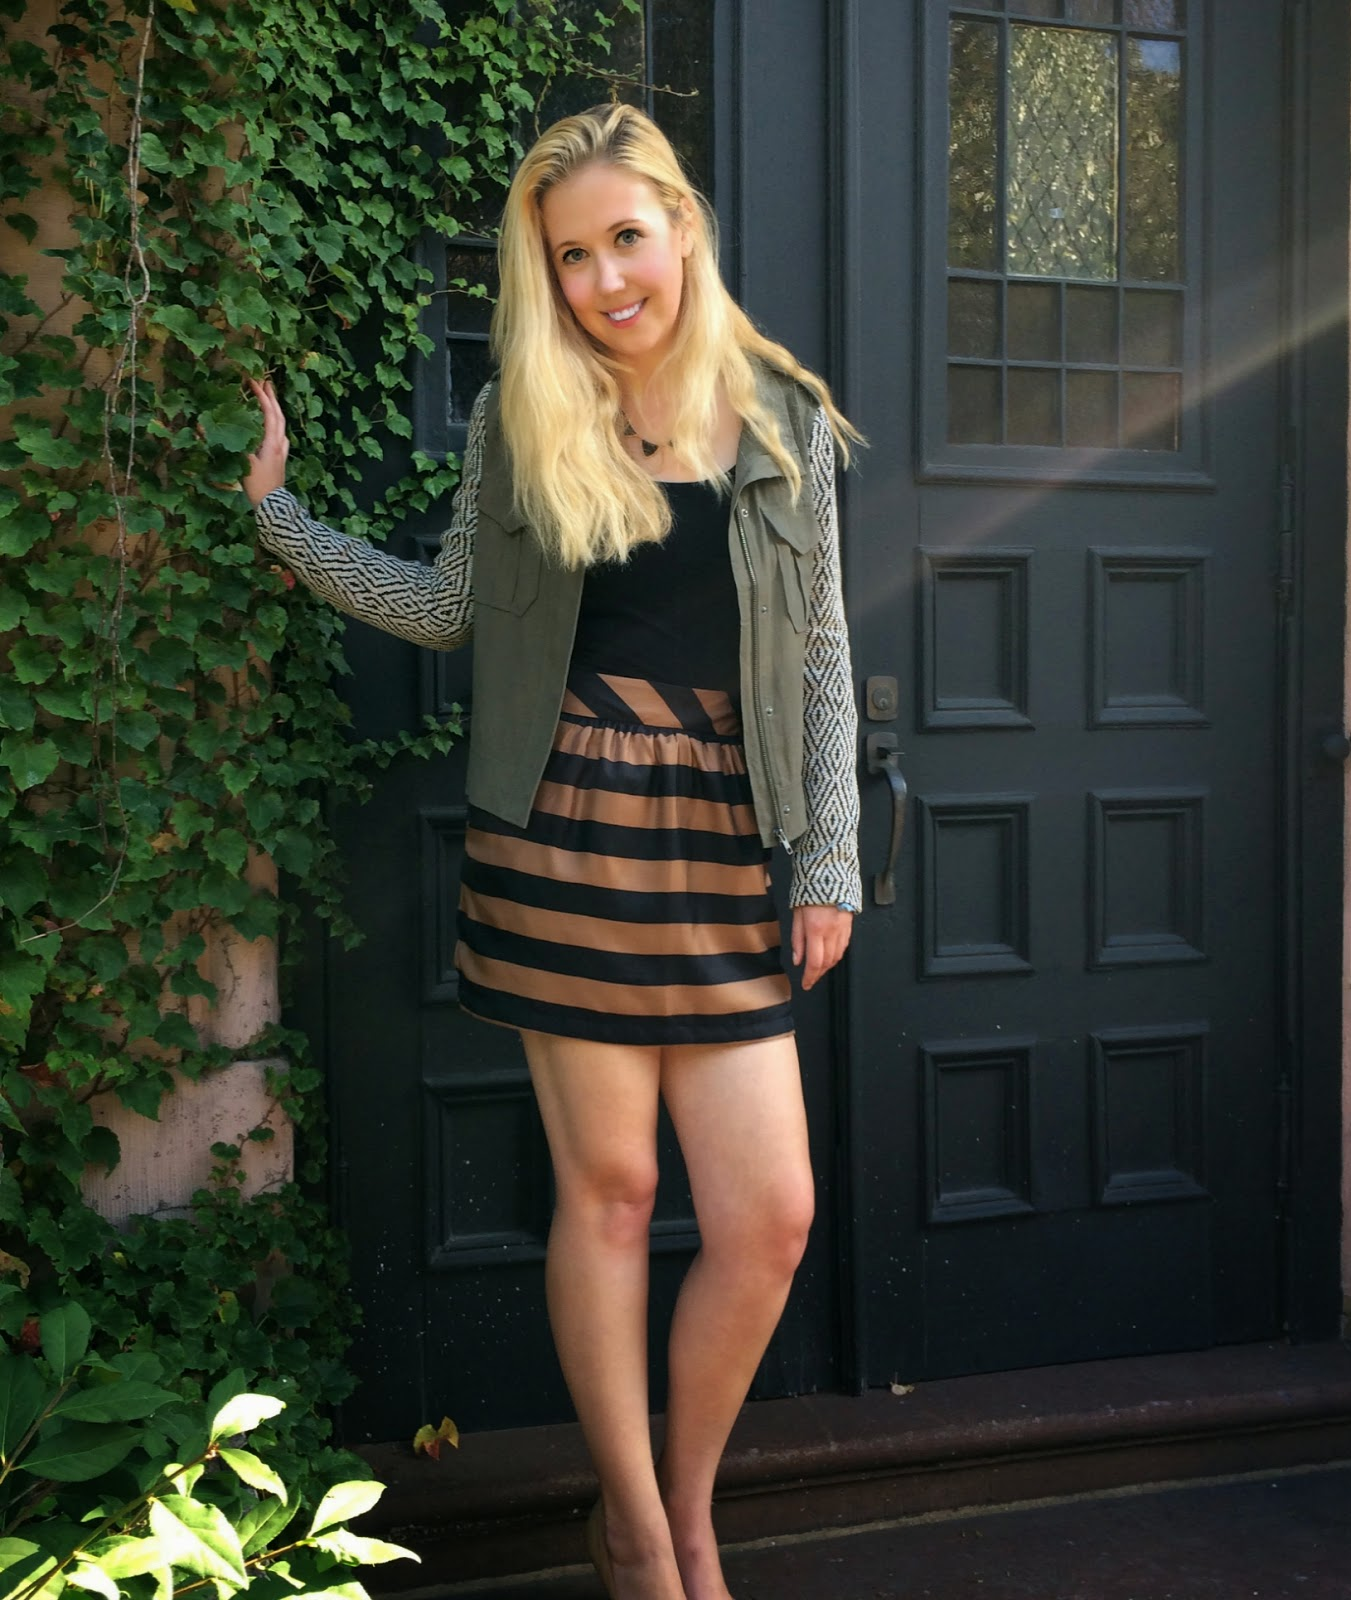 Amanda Uprichard Brighton Skirt, Ella Moss Minka Jacket, Boston Fashion, Boston Fashion Blog, Boston Fashion Blogger, Crush Boutique, Crush Boston, Newbury St, Boston Shopping, Boston Boutiques, Outfits, Fall 2014 Outfits, Fall Fashion, How to Mix Prints, Fall Fashion 2014